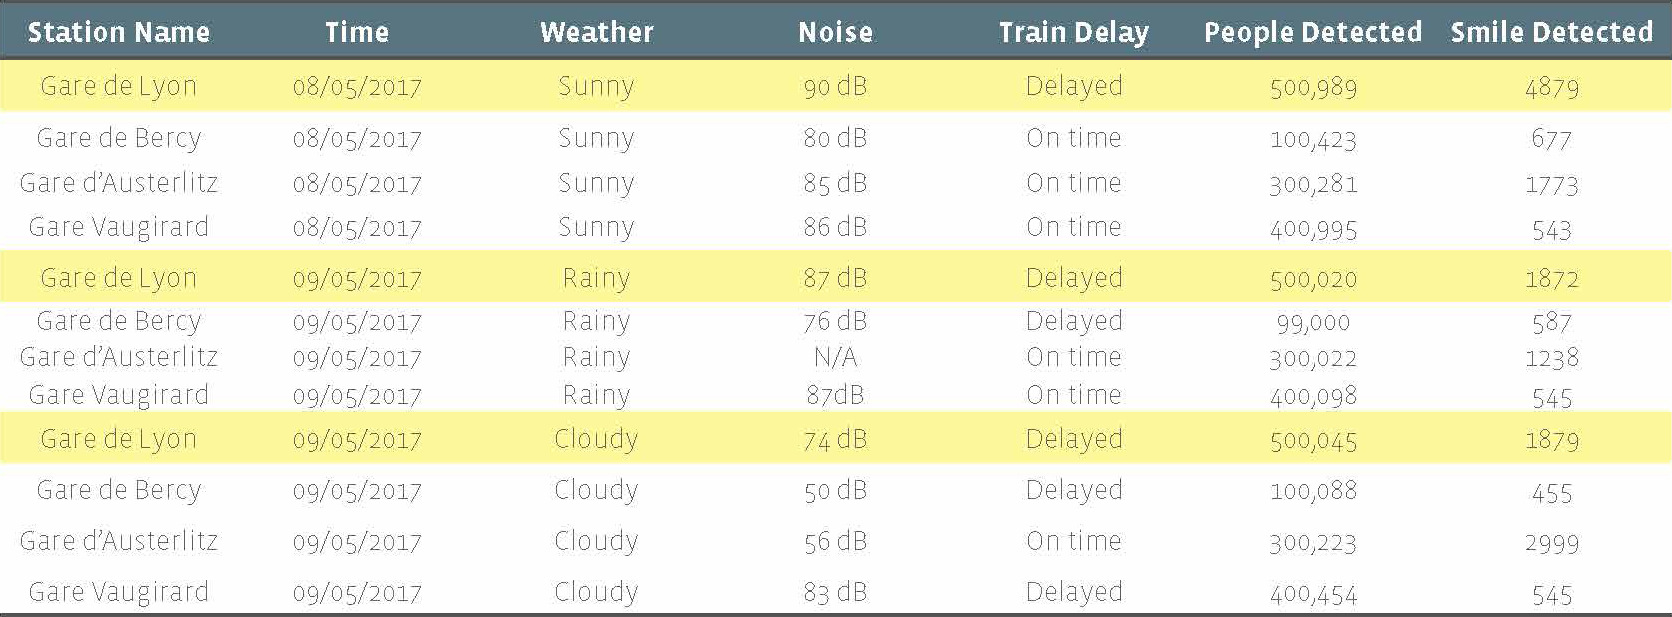 5. This is a potential table showing the emotion data collected by the detectors displaying by the station property, time, weather, noise, train delay information and other information